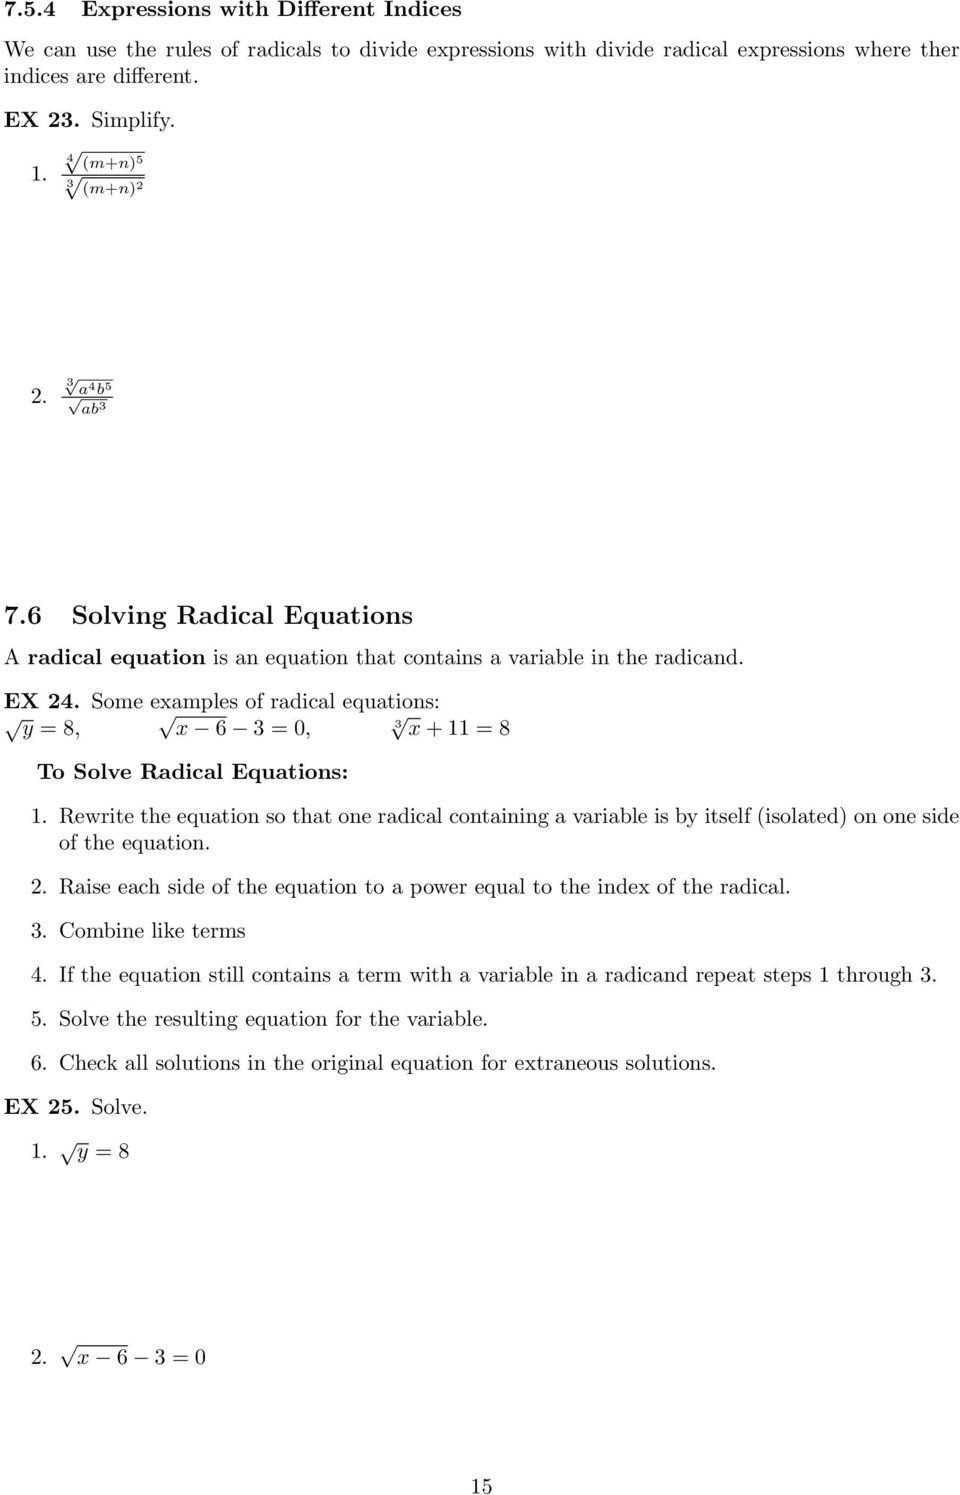 Some examples of radical equations: y = 8, x 6 3 = 0, 3 x + 11 = 8 To Solve Radical Equations: 1.